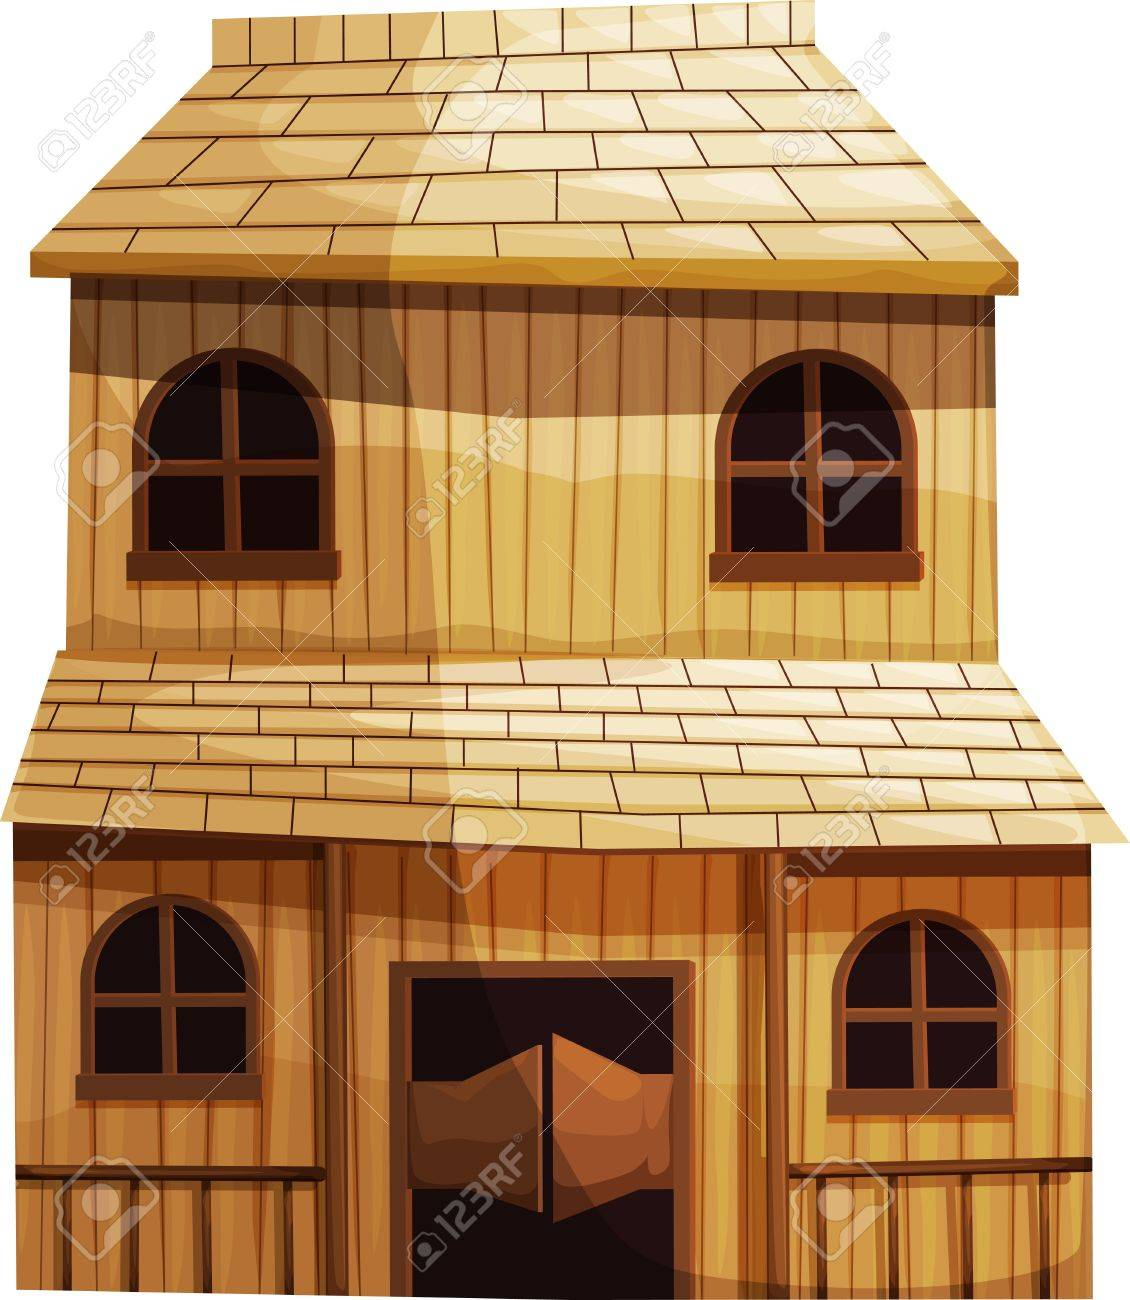 Old wooden door clipart - Old Wooden Door Illustration Of An Isolated Building From The Wild West Illustration